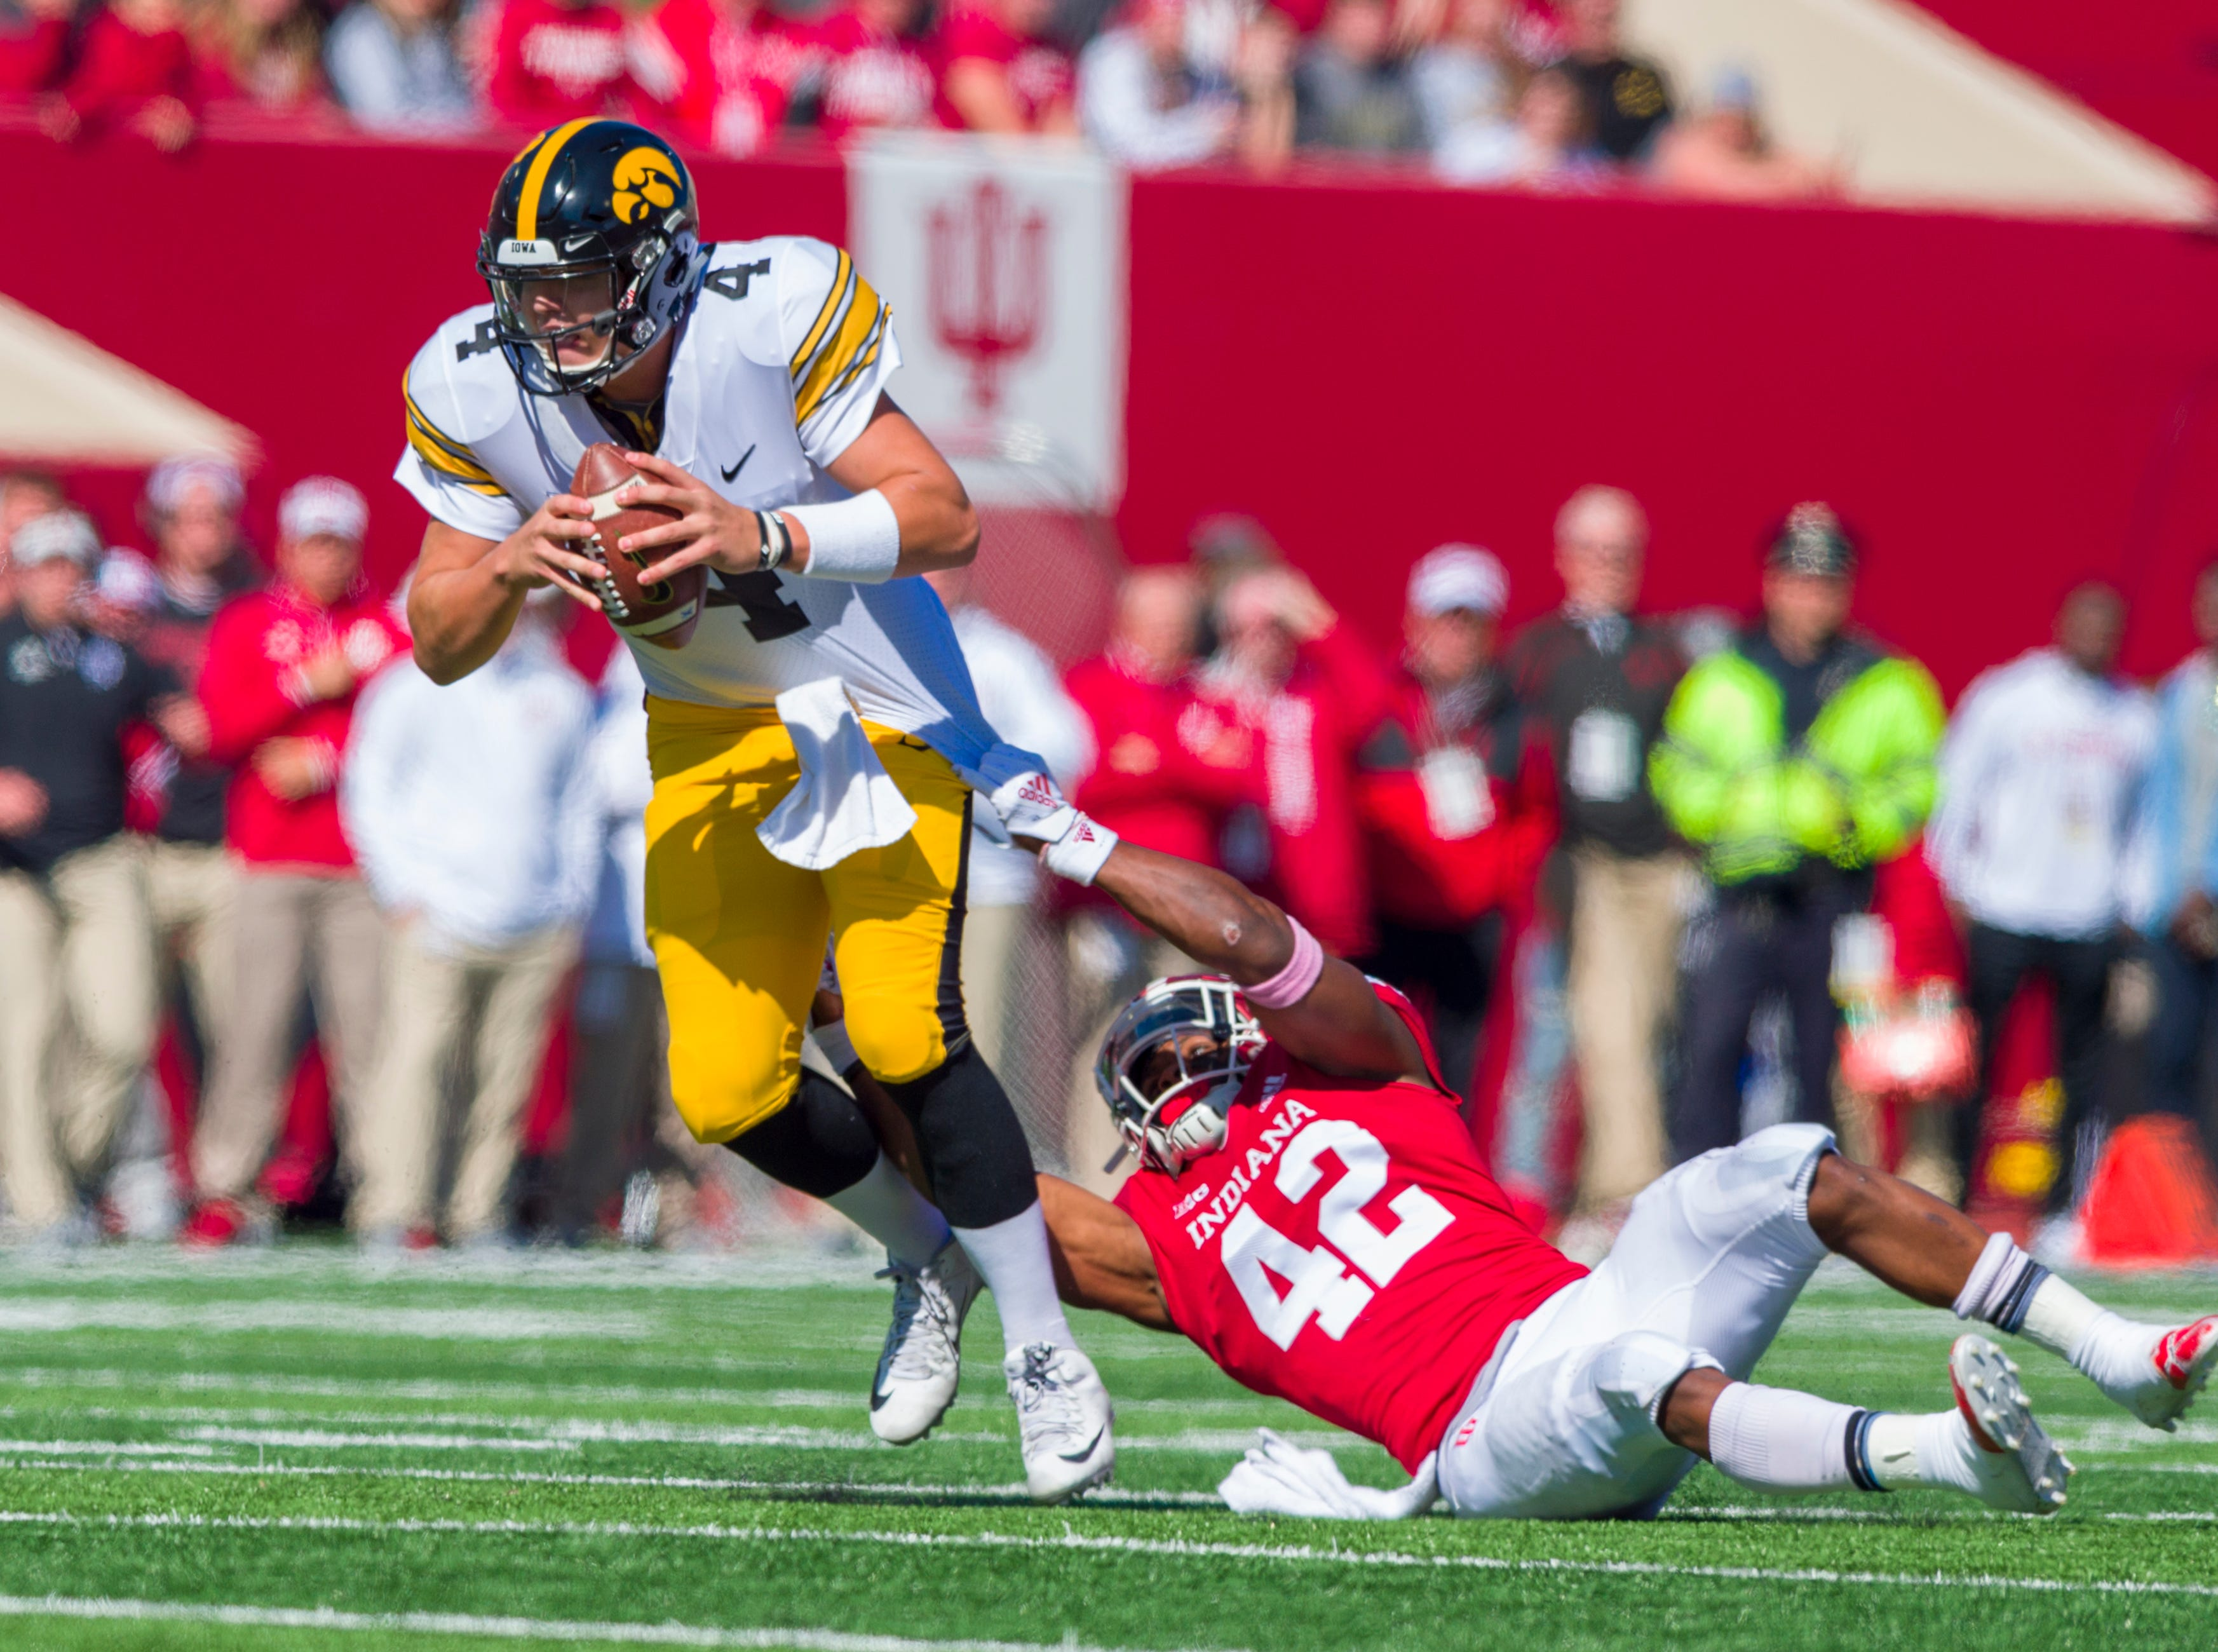 Indiana defensive back Marcelino Ball (42) tries to sack Iowa quarterback Nate Stanley (4) during the first half of an NCAA college football game Saturday, Oct. 13, 2018, in Bloomington, Ind. (AP Photo/Doug McSchooler)